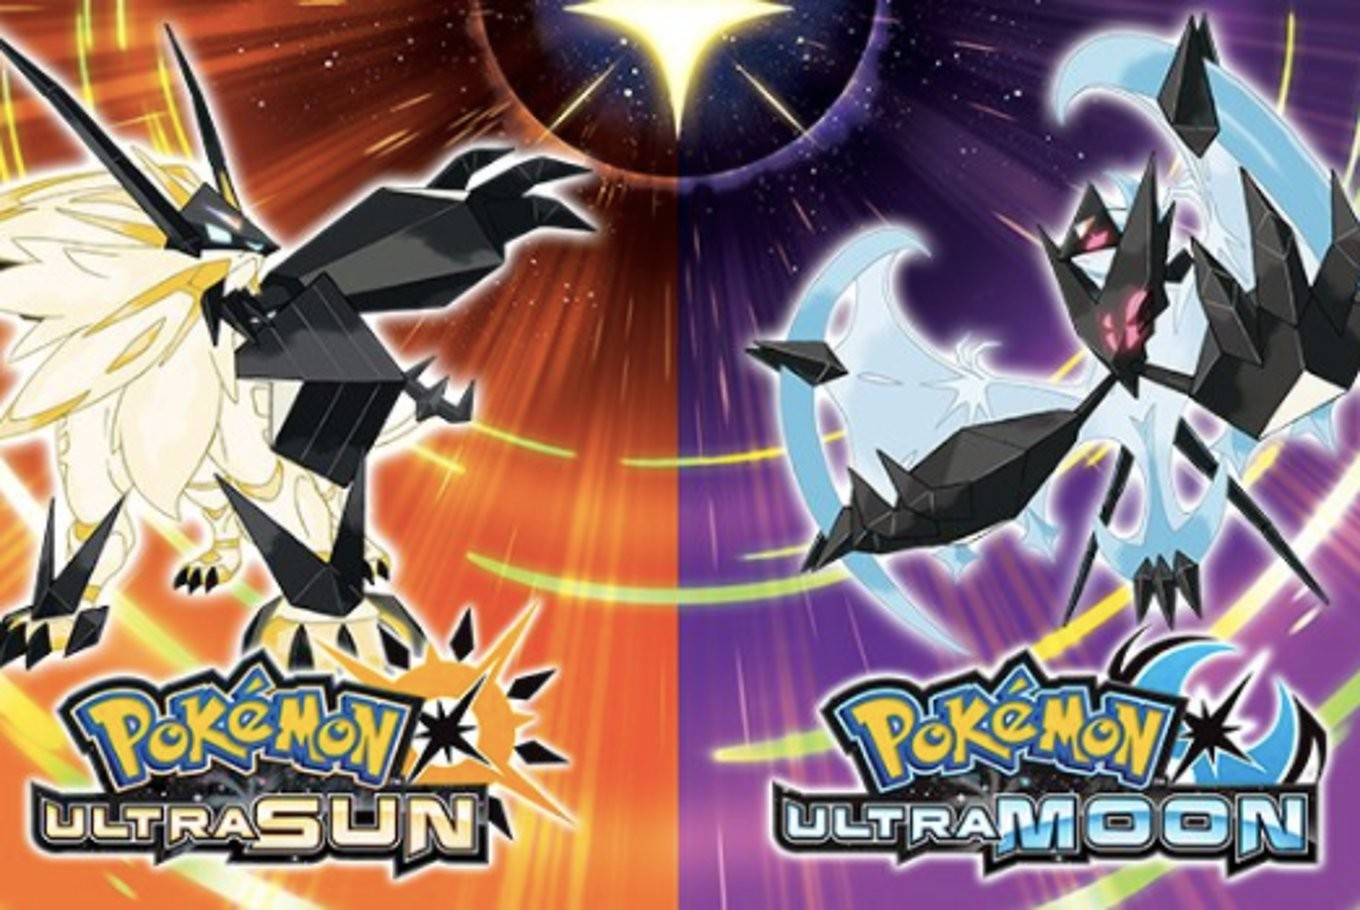 Nintendo 3ds Pokemon Games : Pokémon ultra sun and ultra moon coming to nintendo ds this